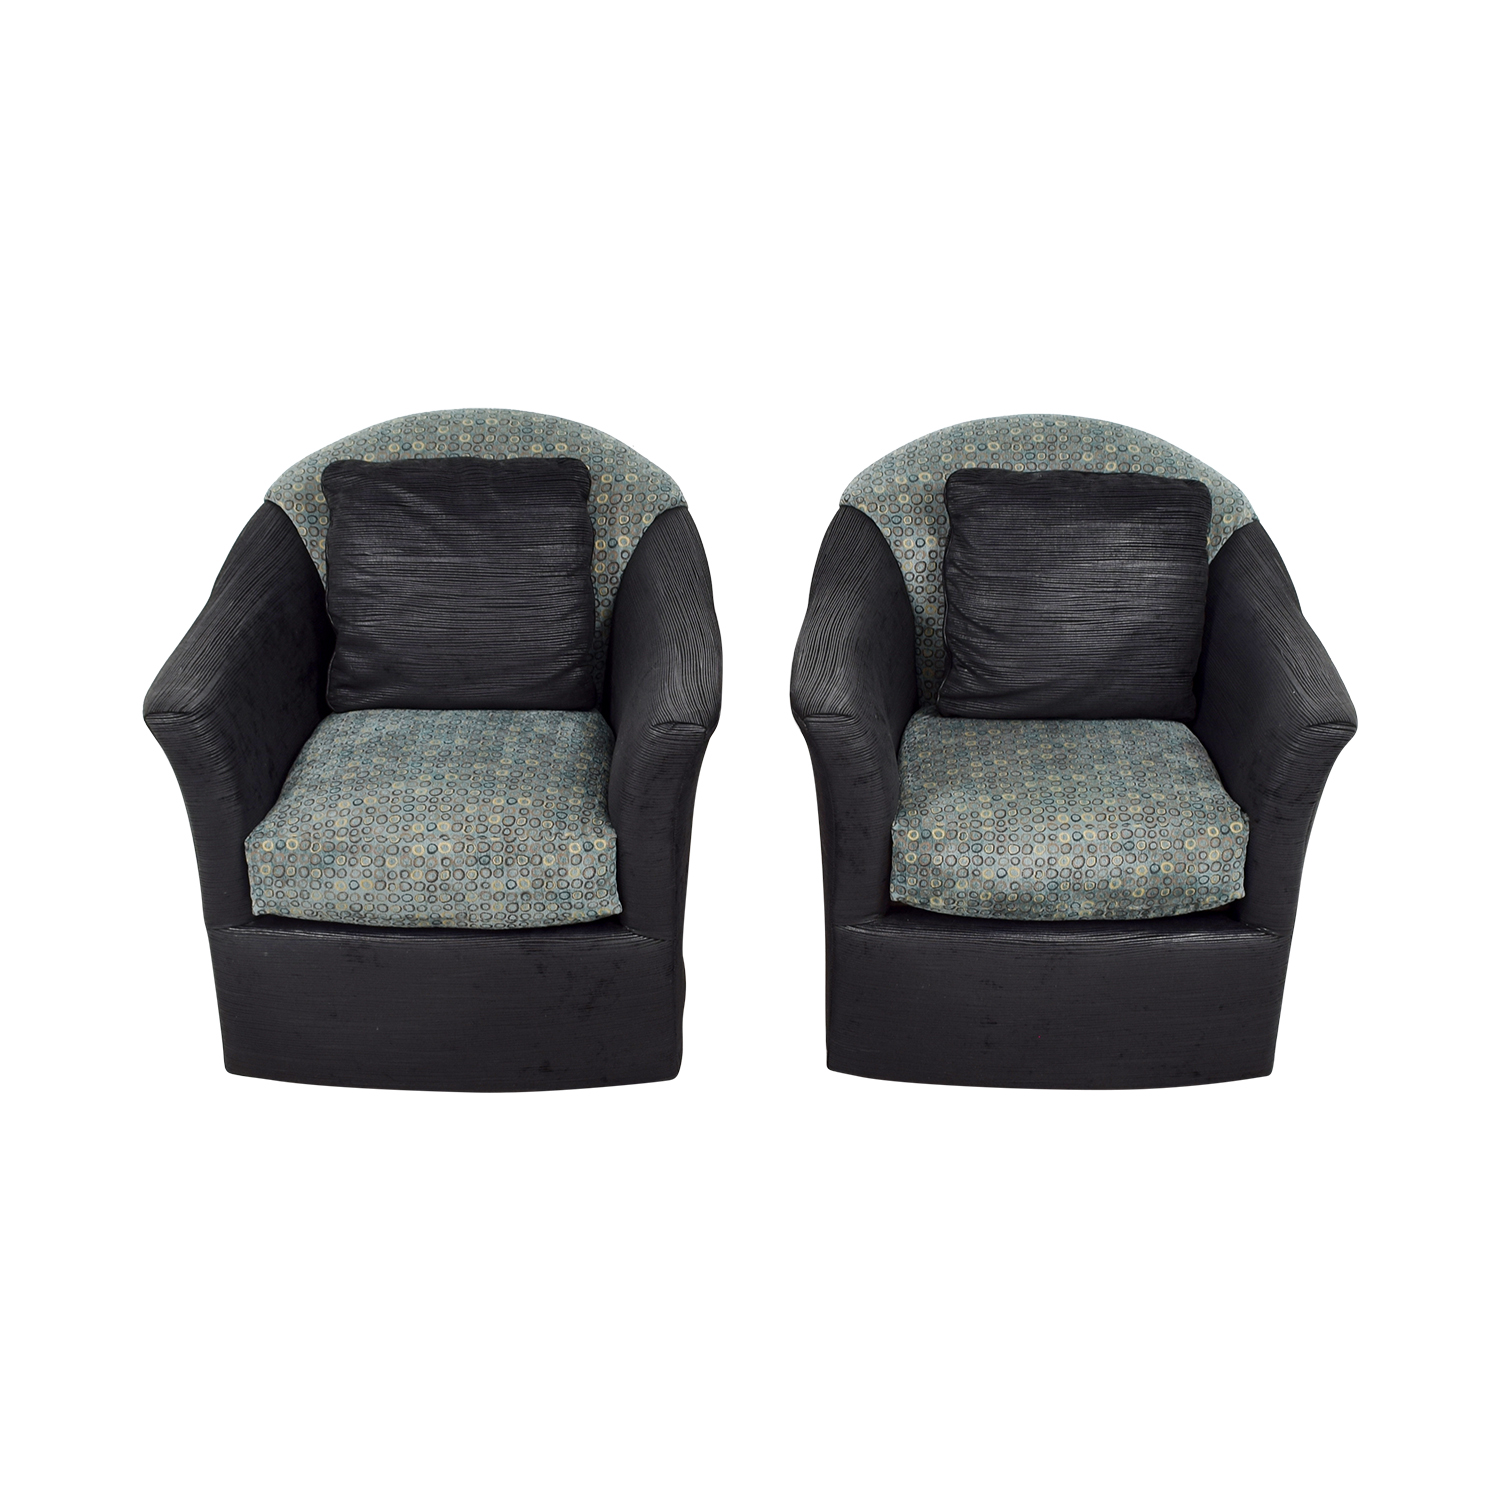 Fairfield Barrel Black Blue and Gold Accent Chairs / Accent Chairs